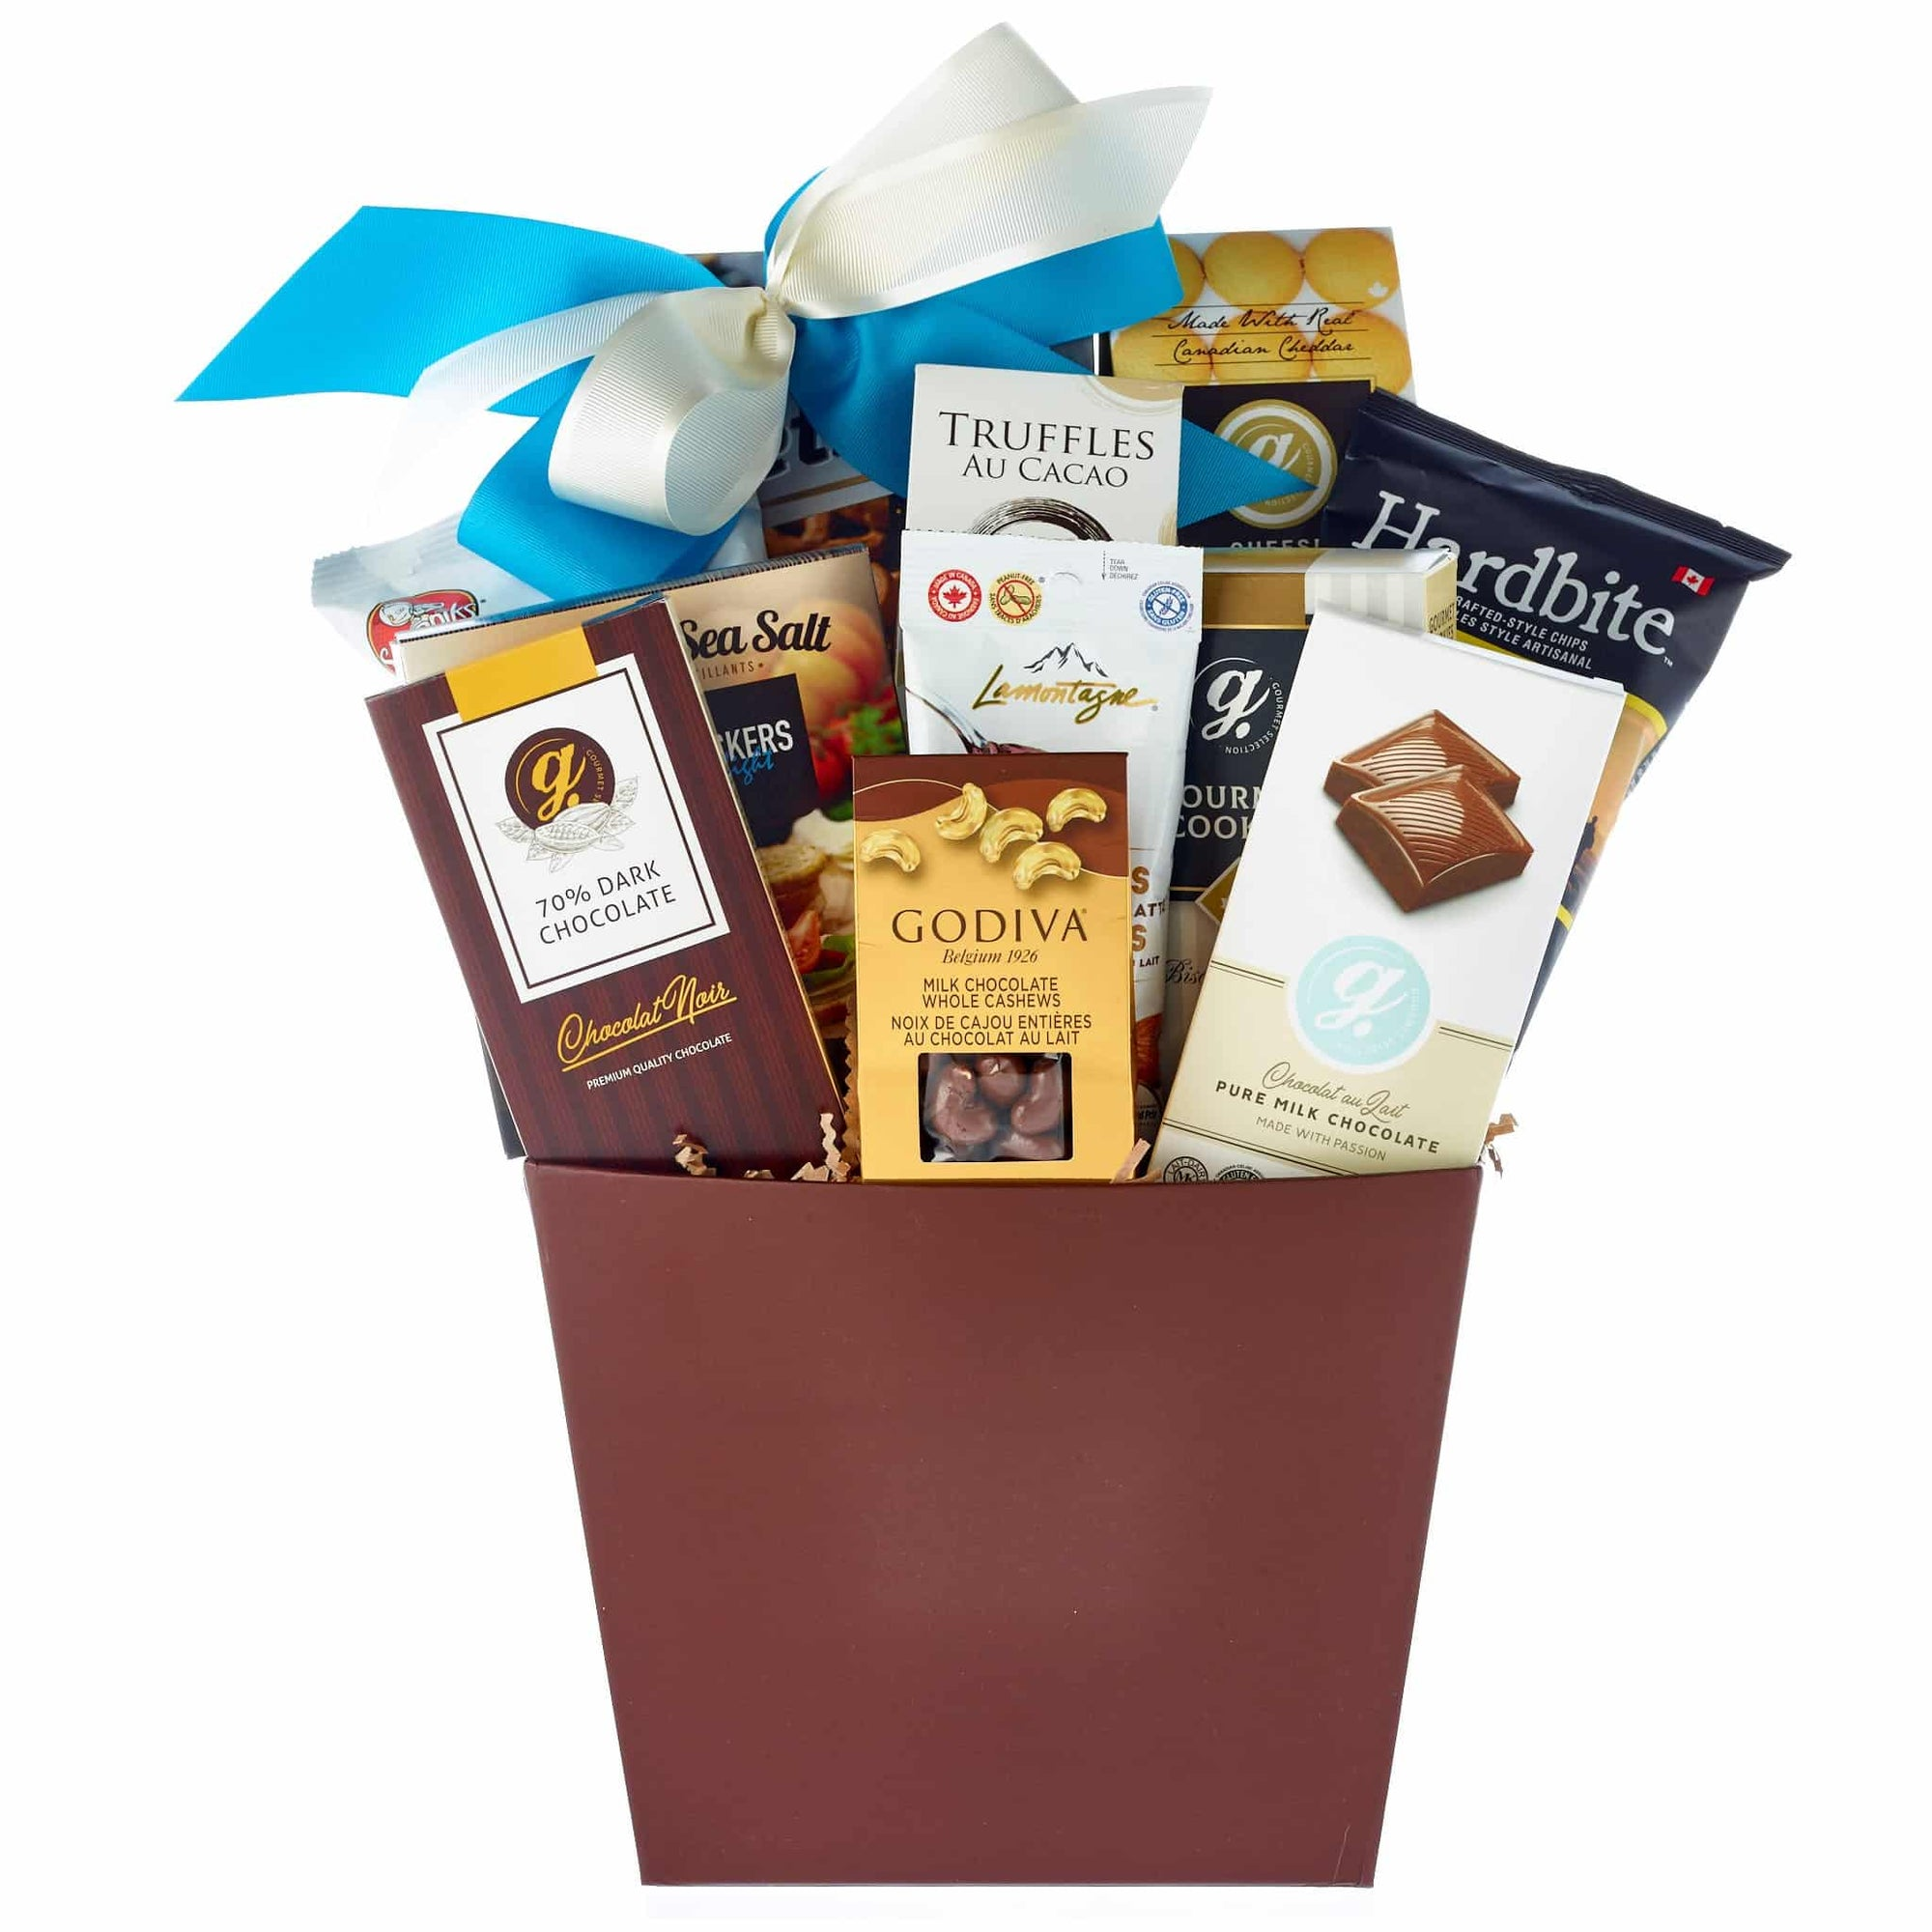 Chocolates, crackers, chips gourmet gift basket